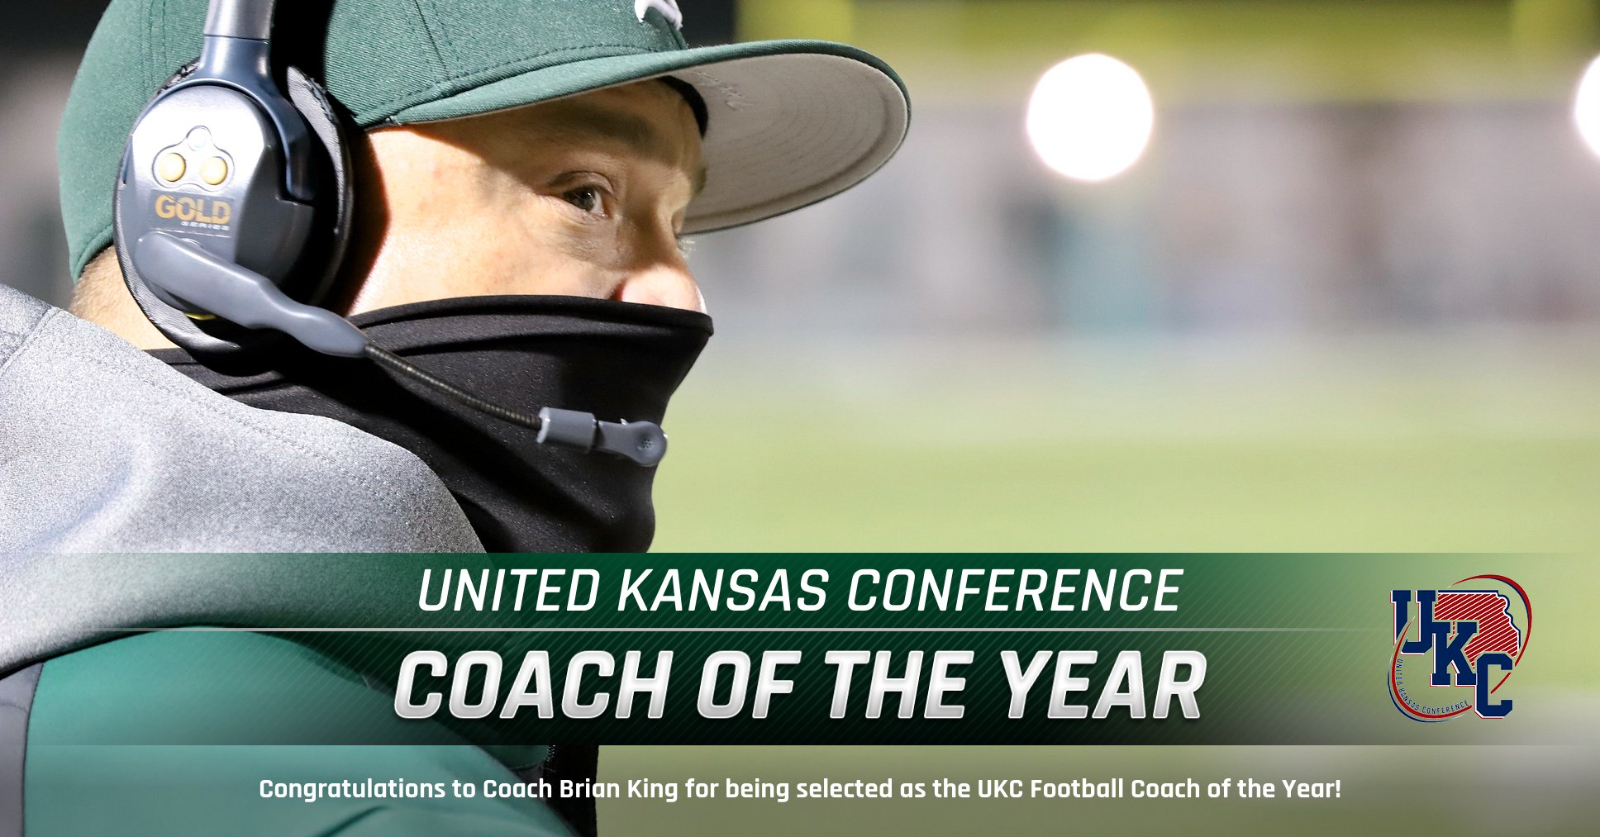 Coach King – UKC Coach of the Year